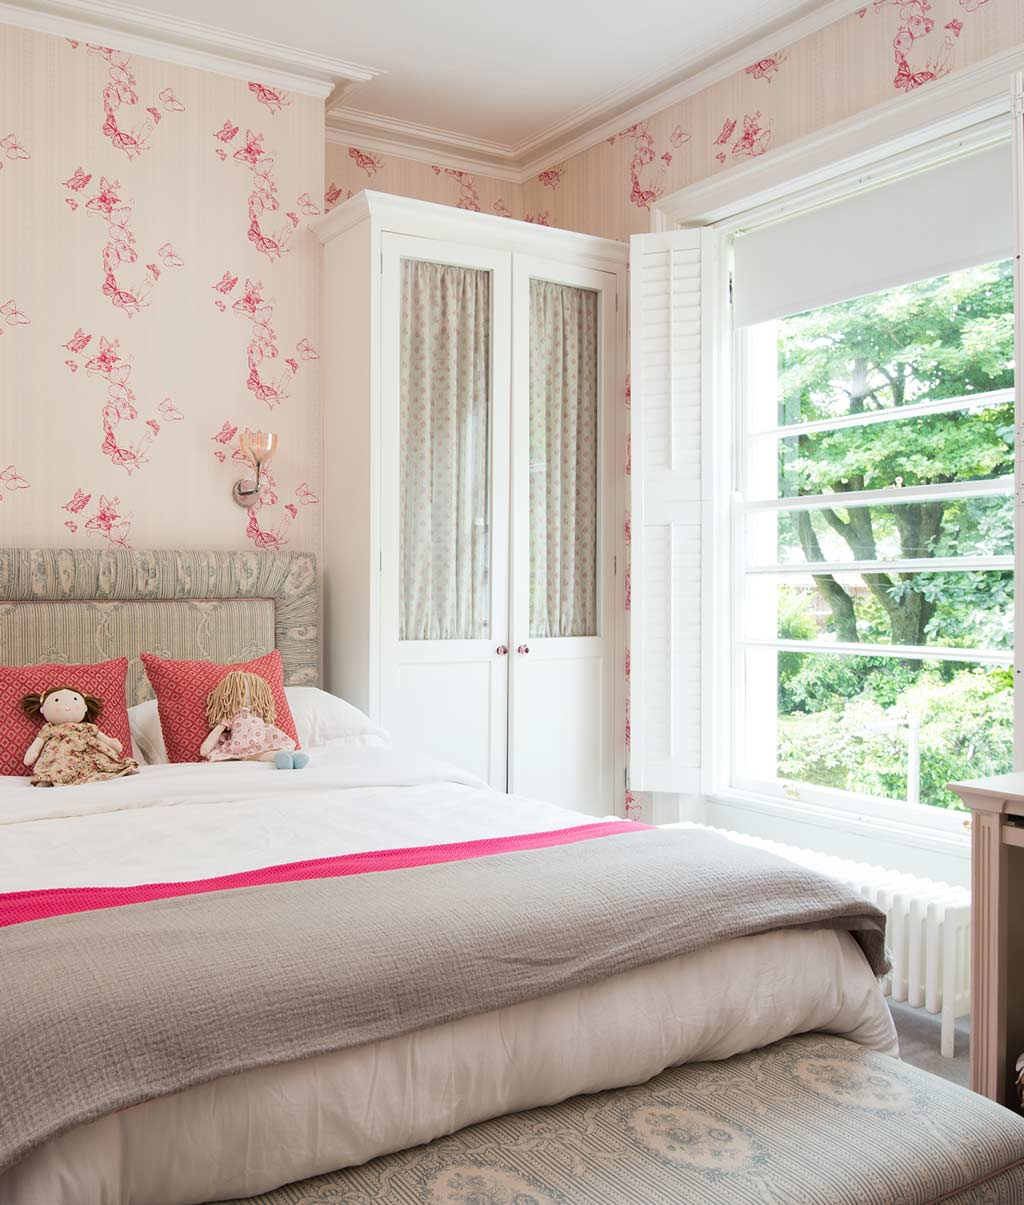 Thompson Clarke Interiors - Townhouse Project Image 9